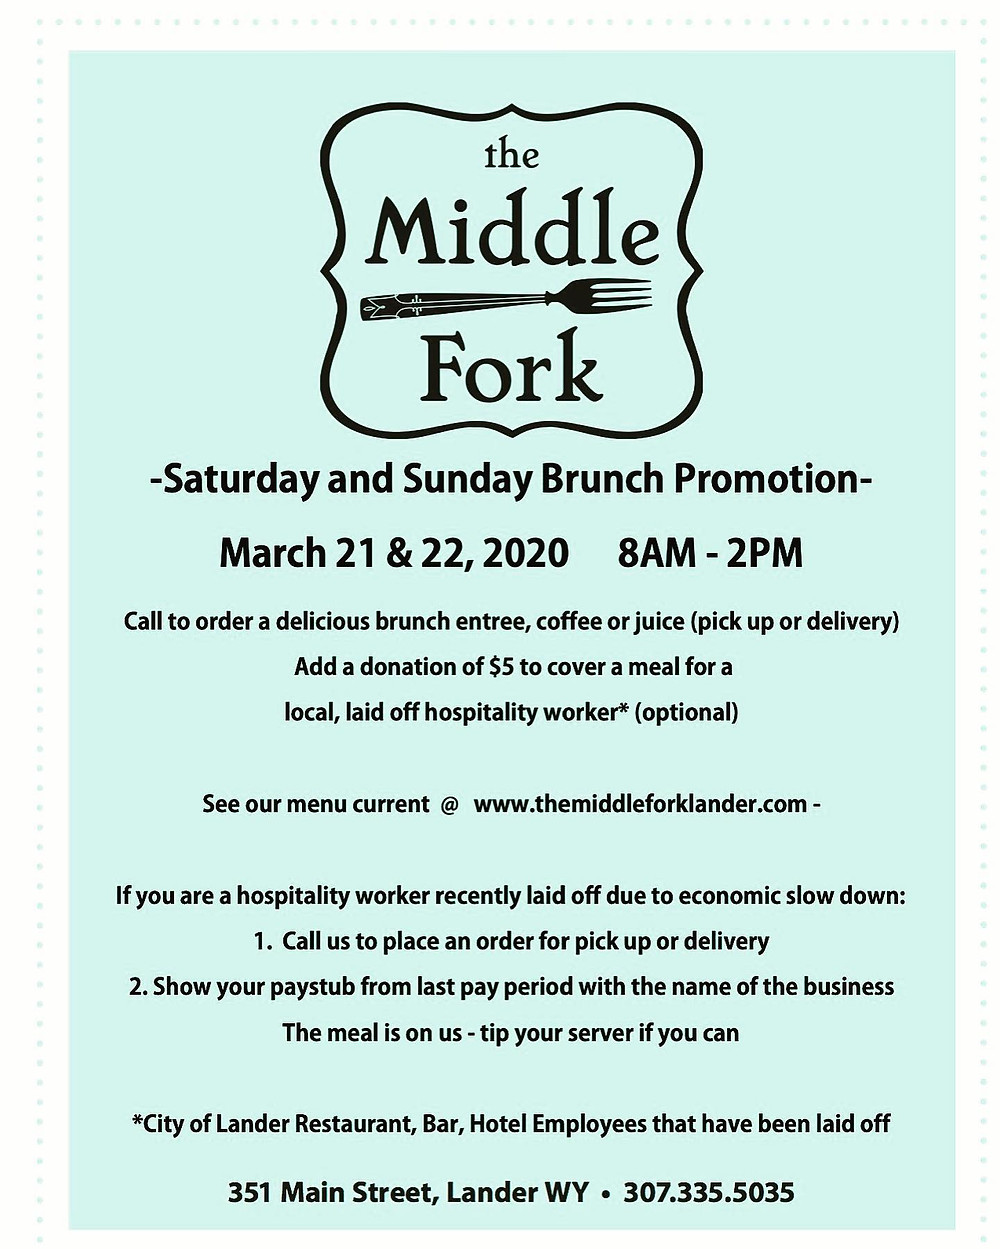 Middle Fork Brunch Promotion